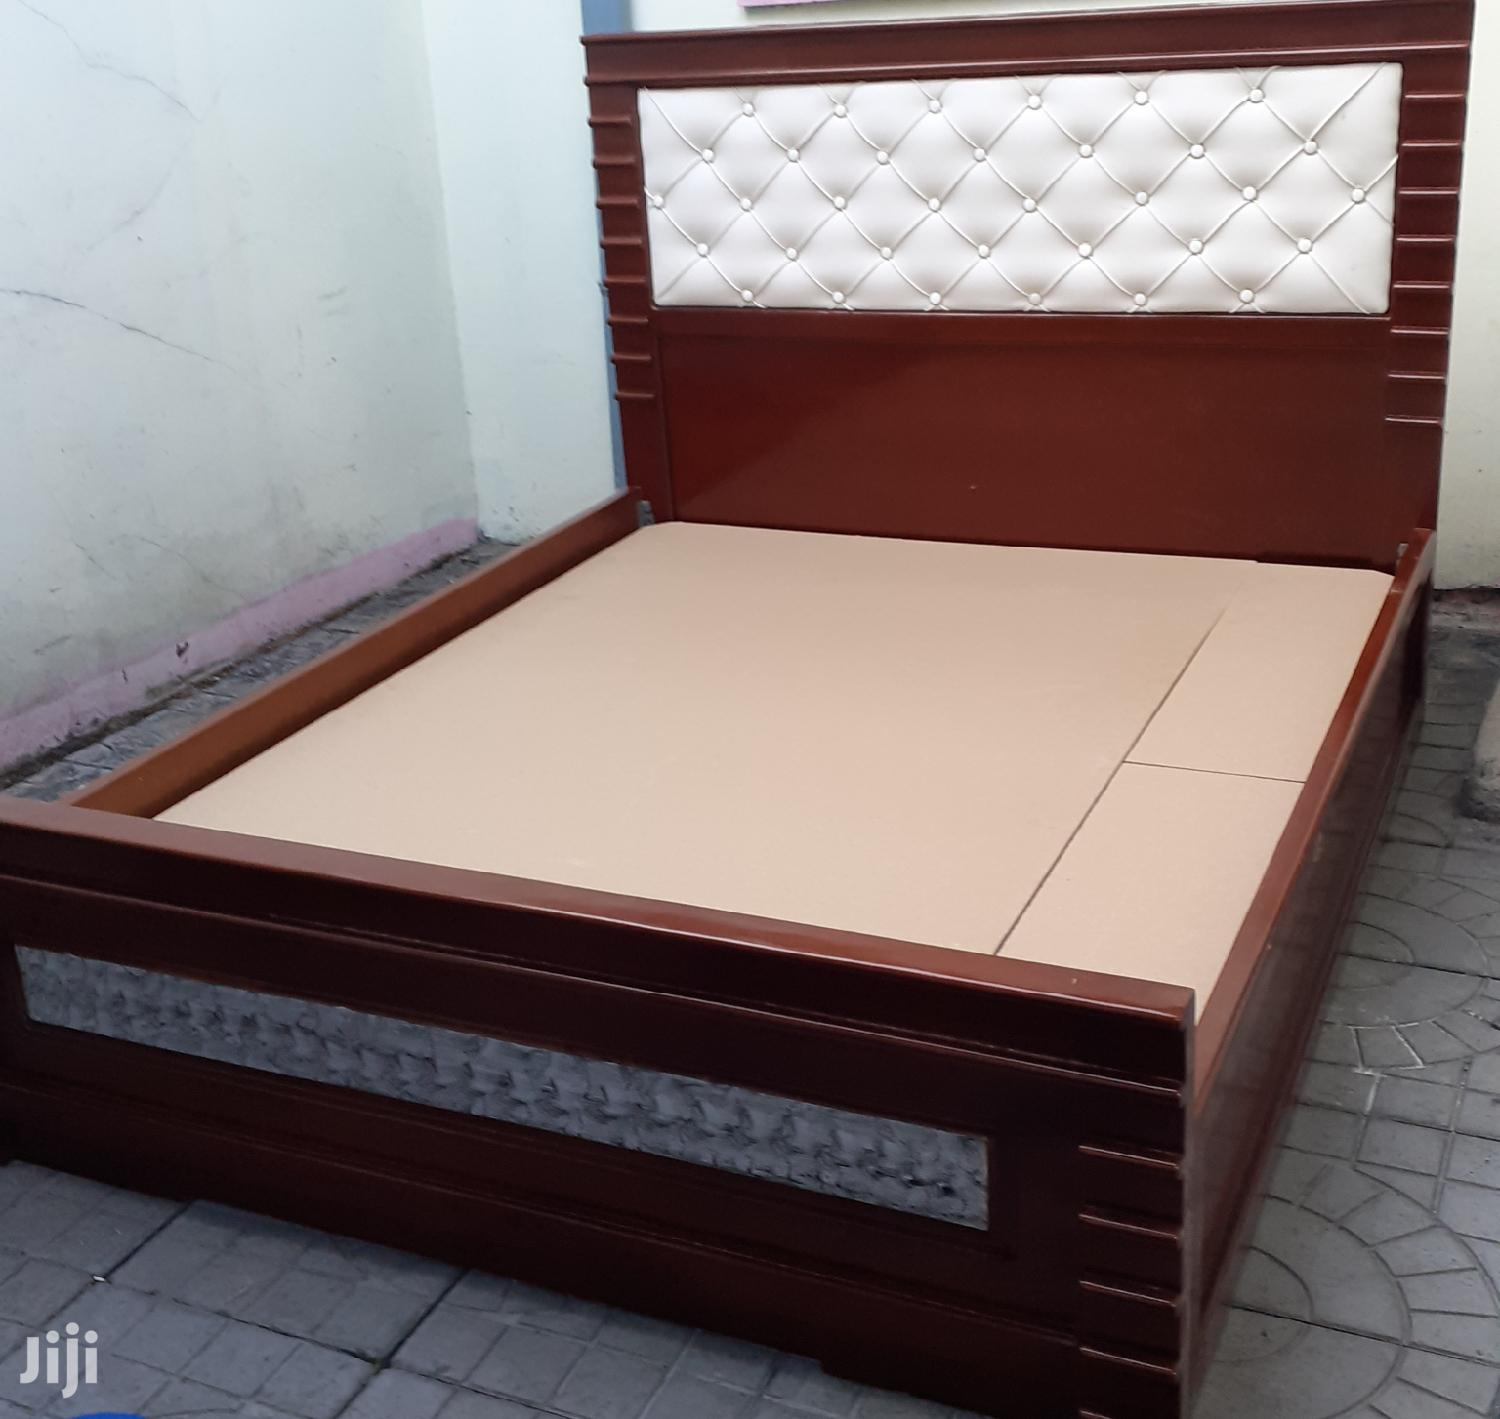 New Quality Bed 1.50cm+Side Table   Furniture for sale in Bole, Addis Ababa, Ethiopia